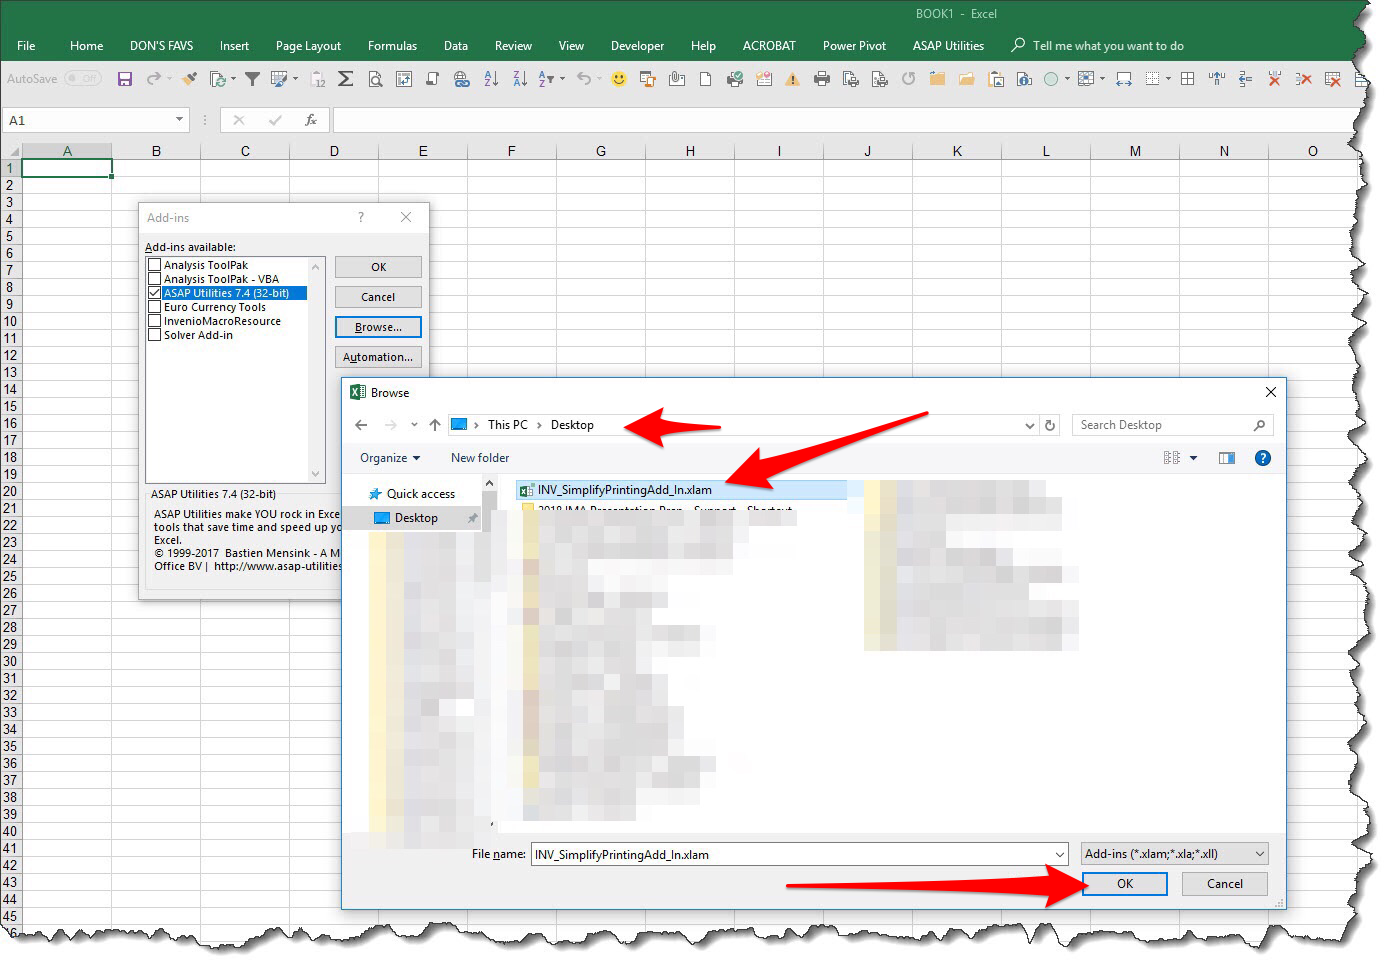 Microsoft Excel — Share Your Automation Tricks by Creating